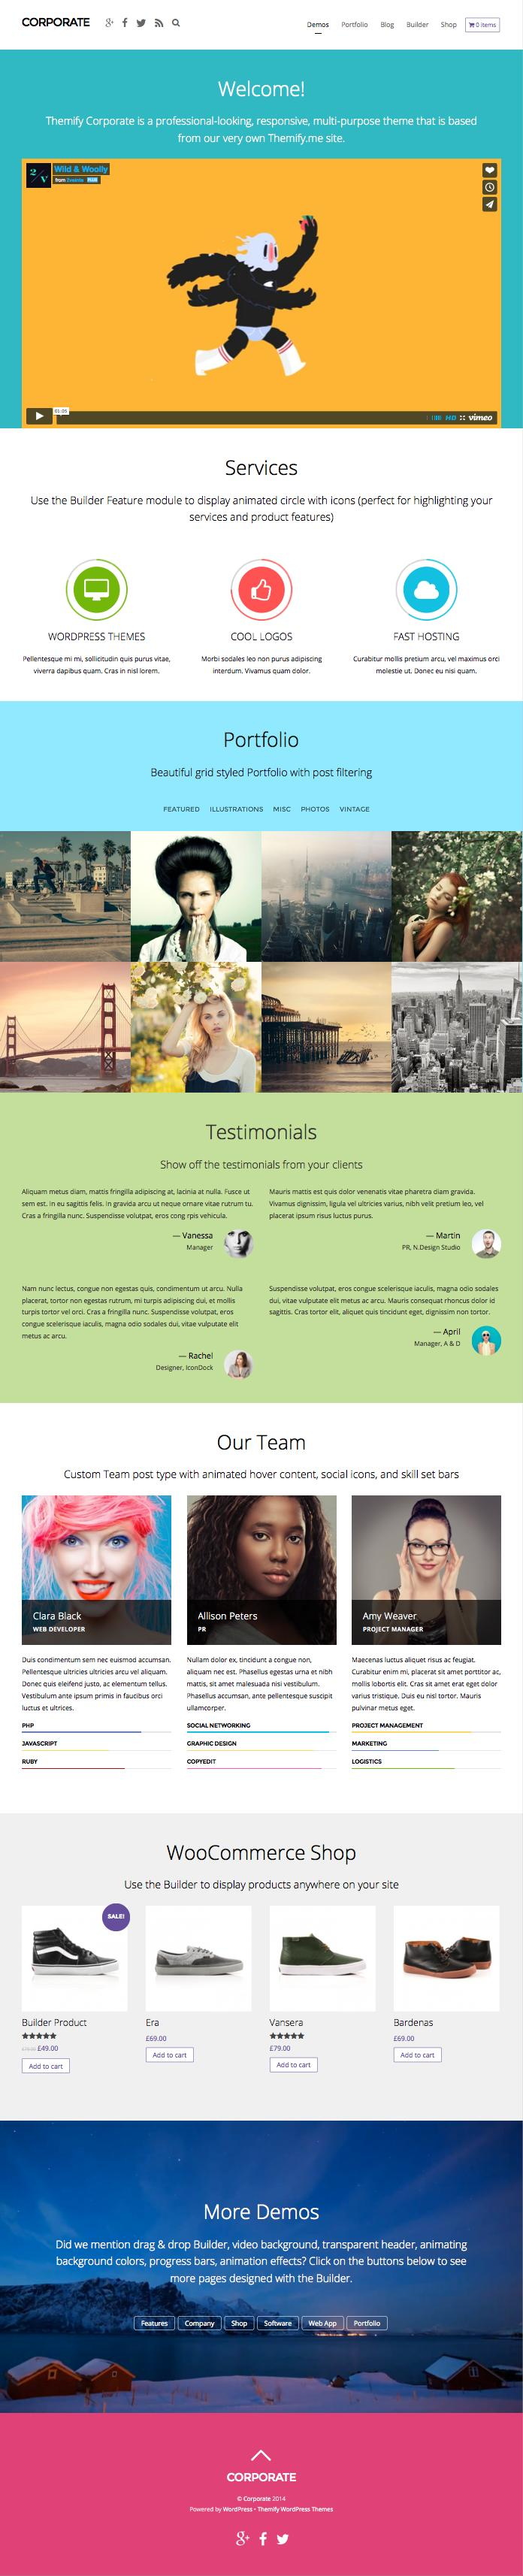 Corporate WordPress Multipurpose Theme